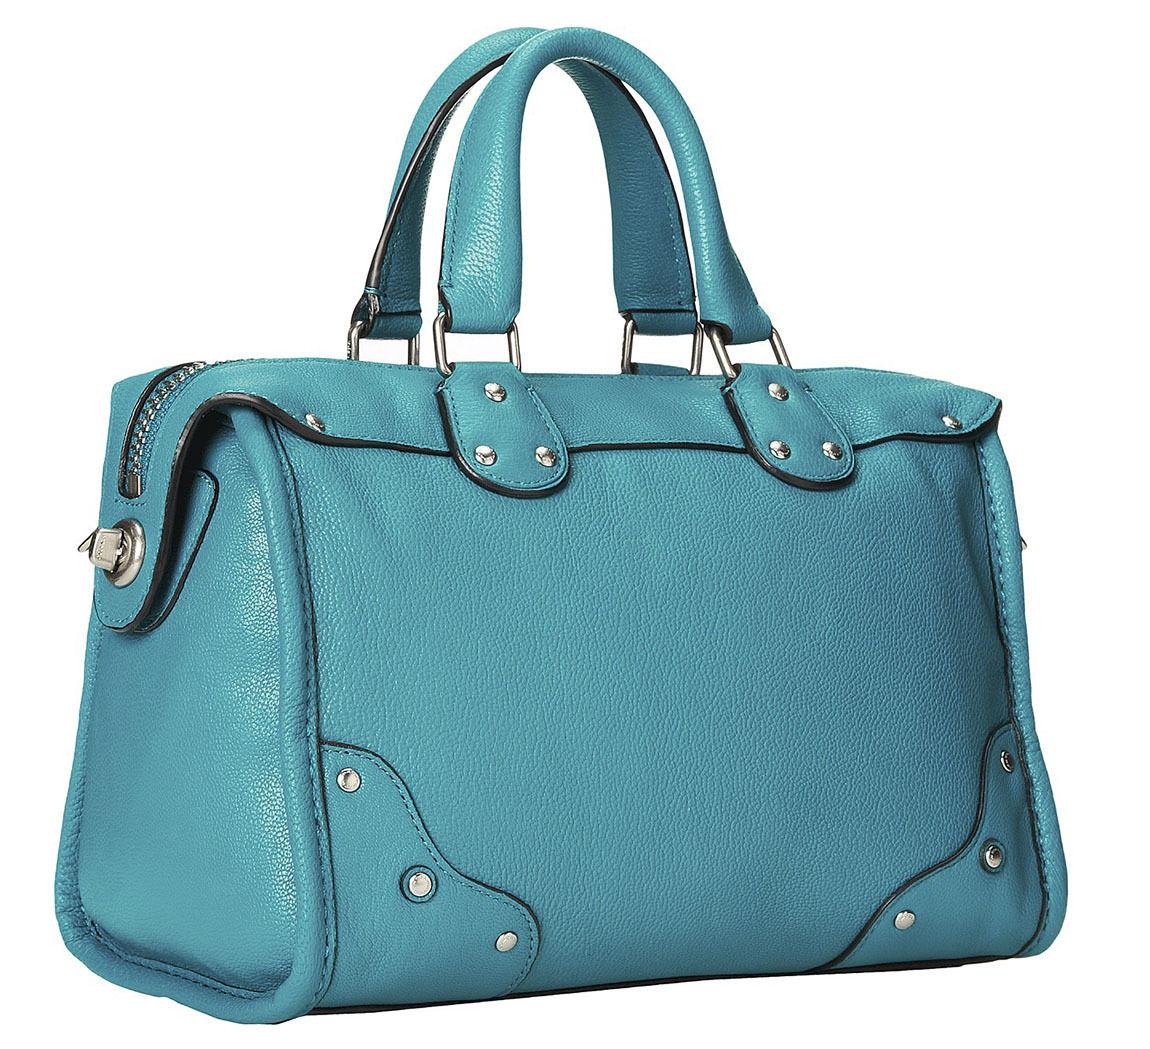 cc66063f3db0 20+ Aqua Blue Coach Satchel Pictures and Ideas on Meta Networks